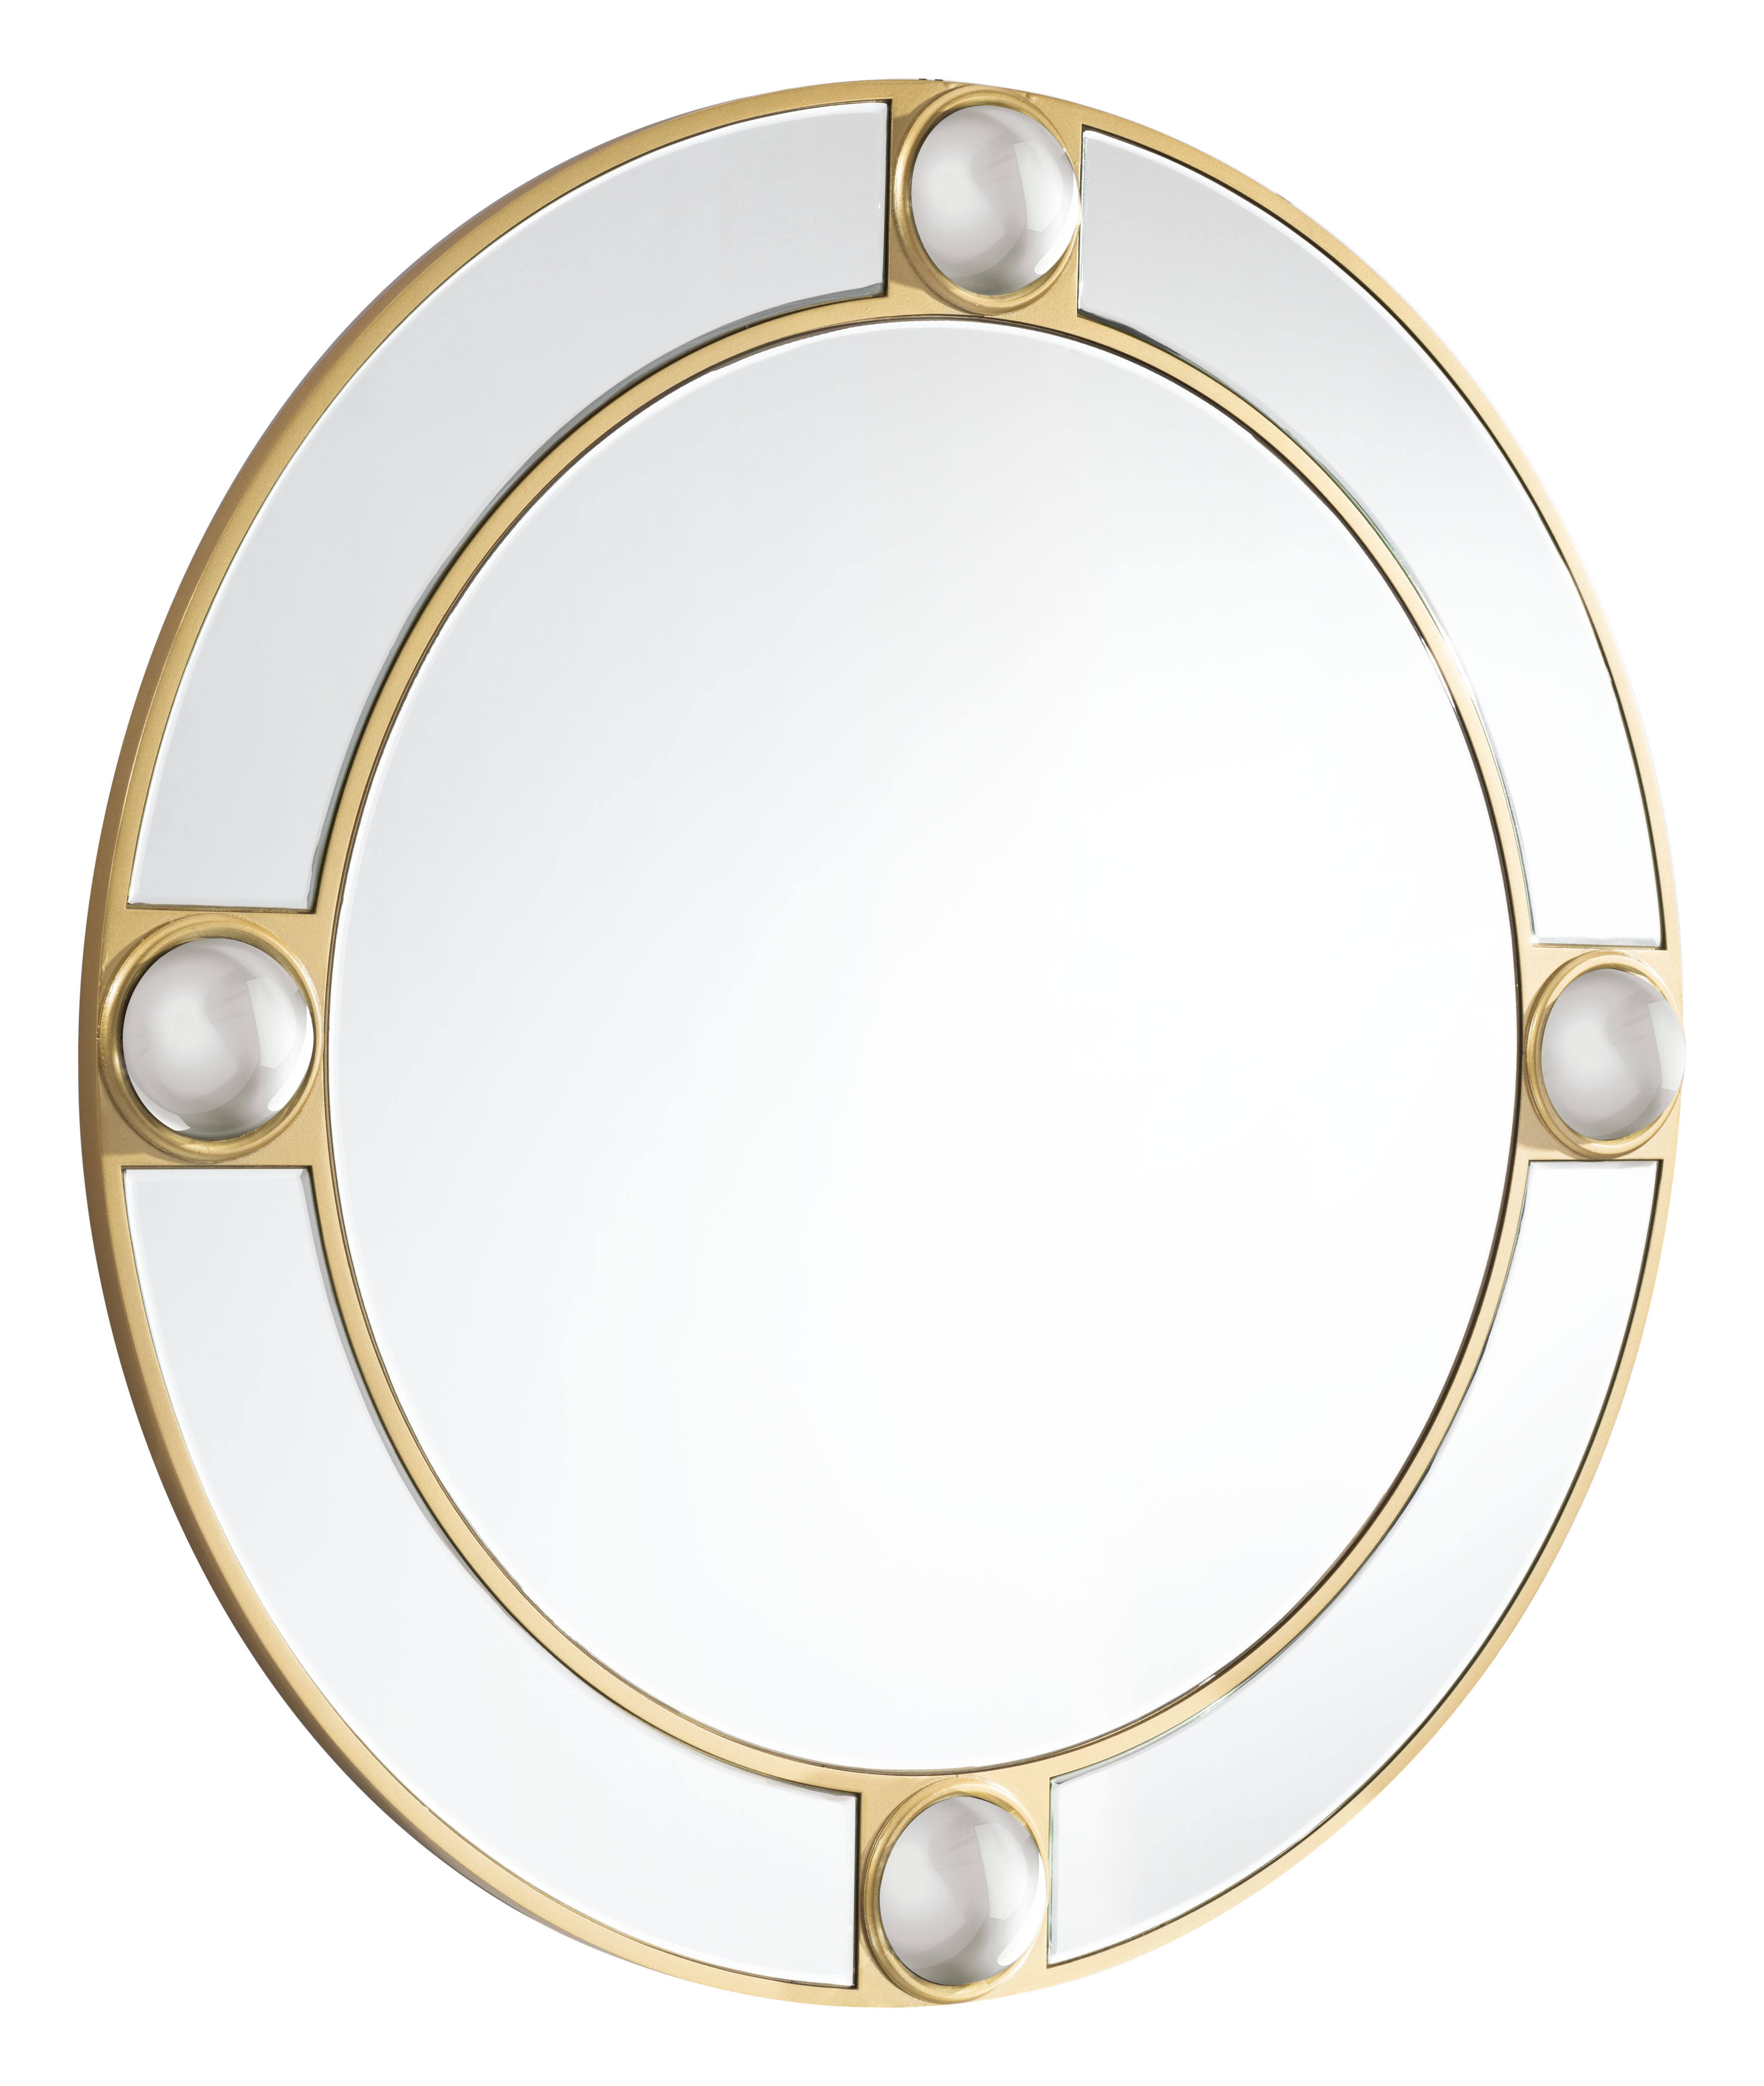 Lucite mirror finished in gold from Zuo Modern